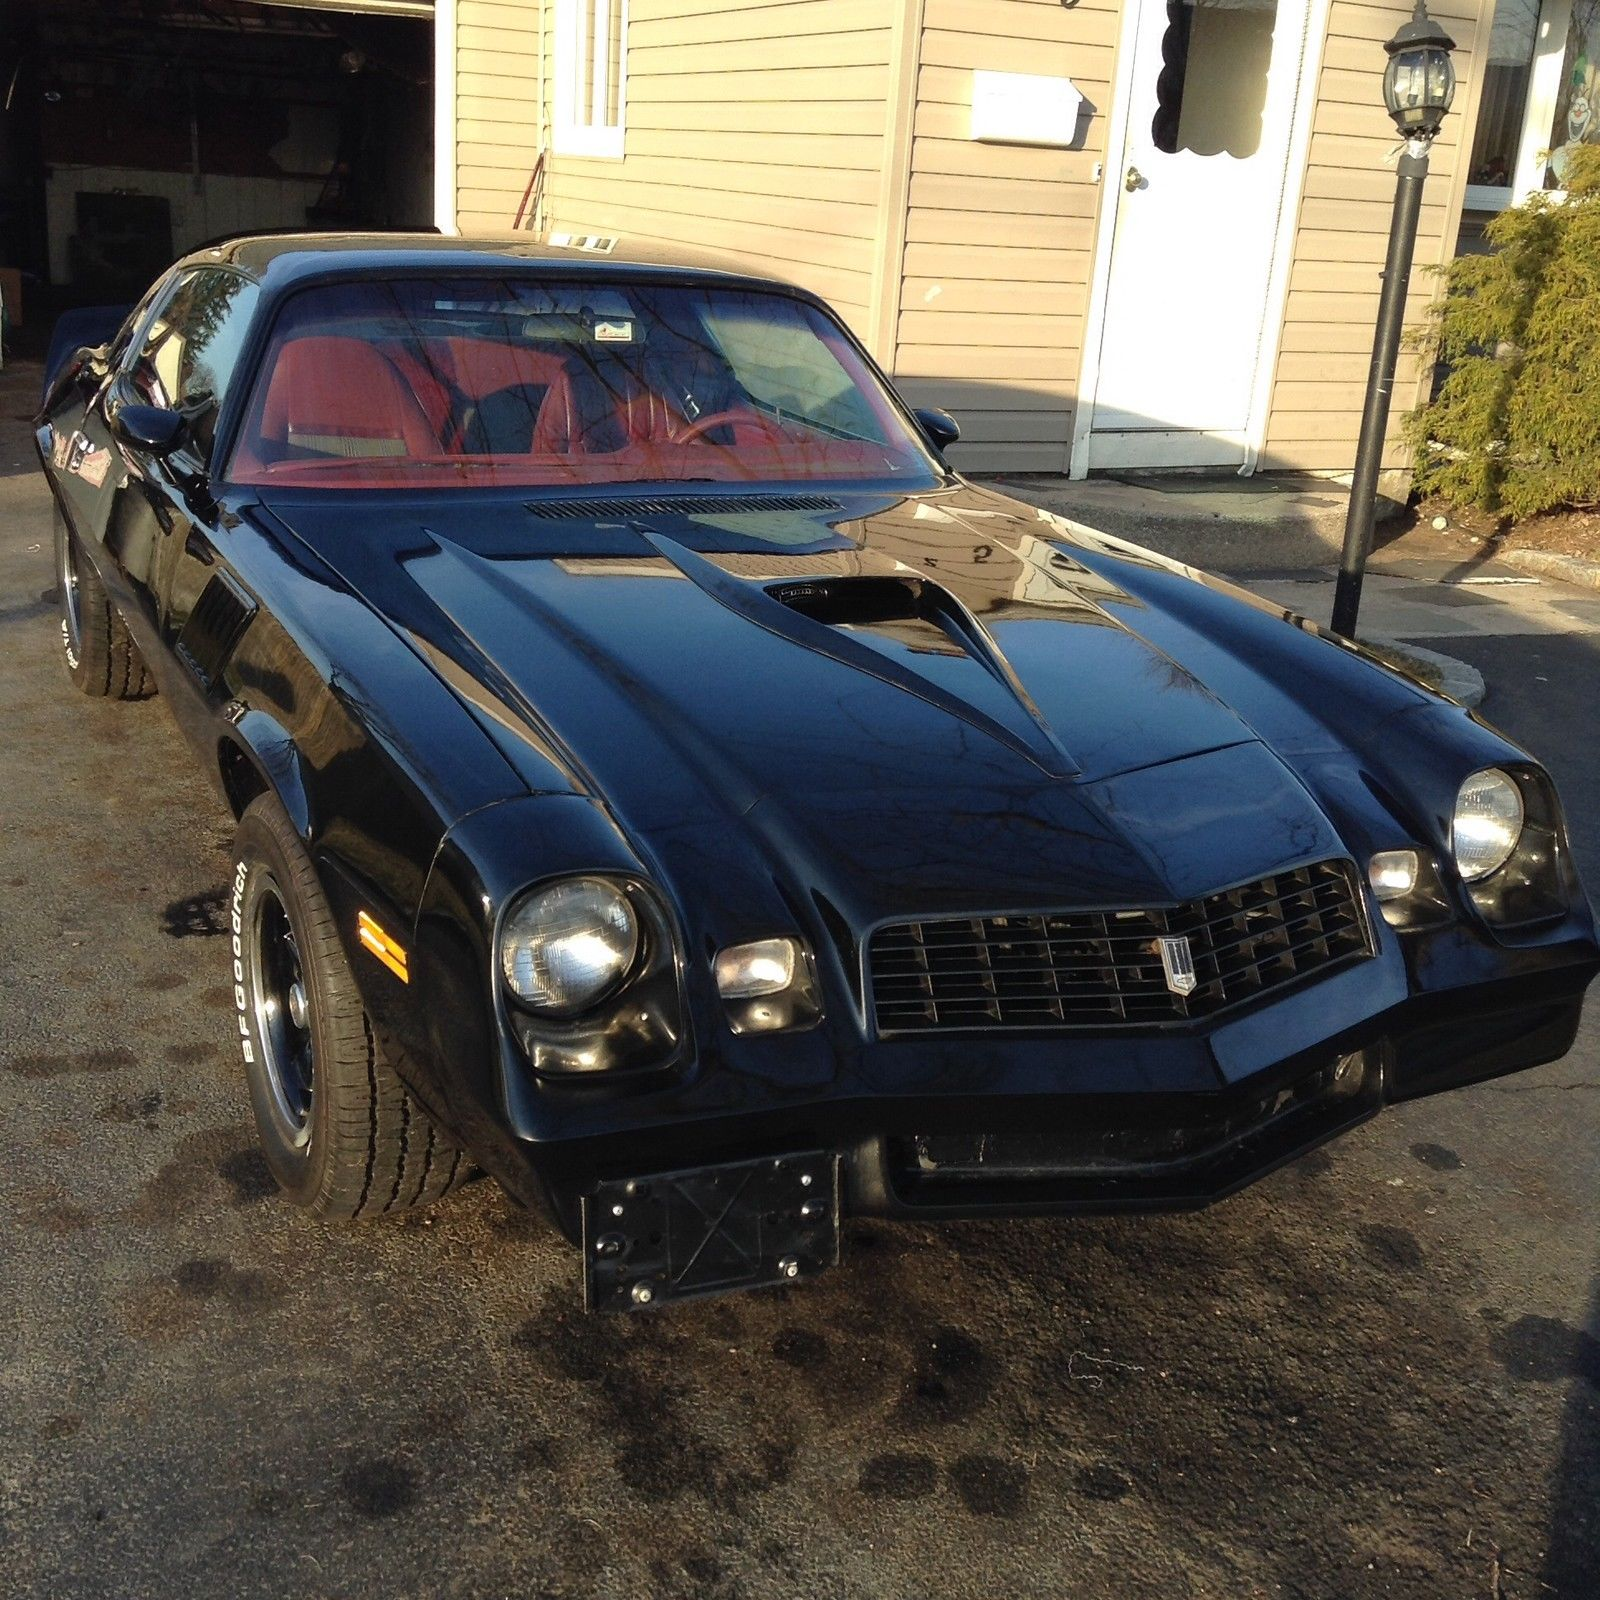 1978 camaro z28 factory black 4 speed classic chevrolet camaro 1978 for sale. Black Bedroom Furniture Sets. Home Design Ideas